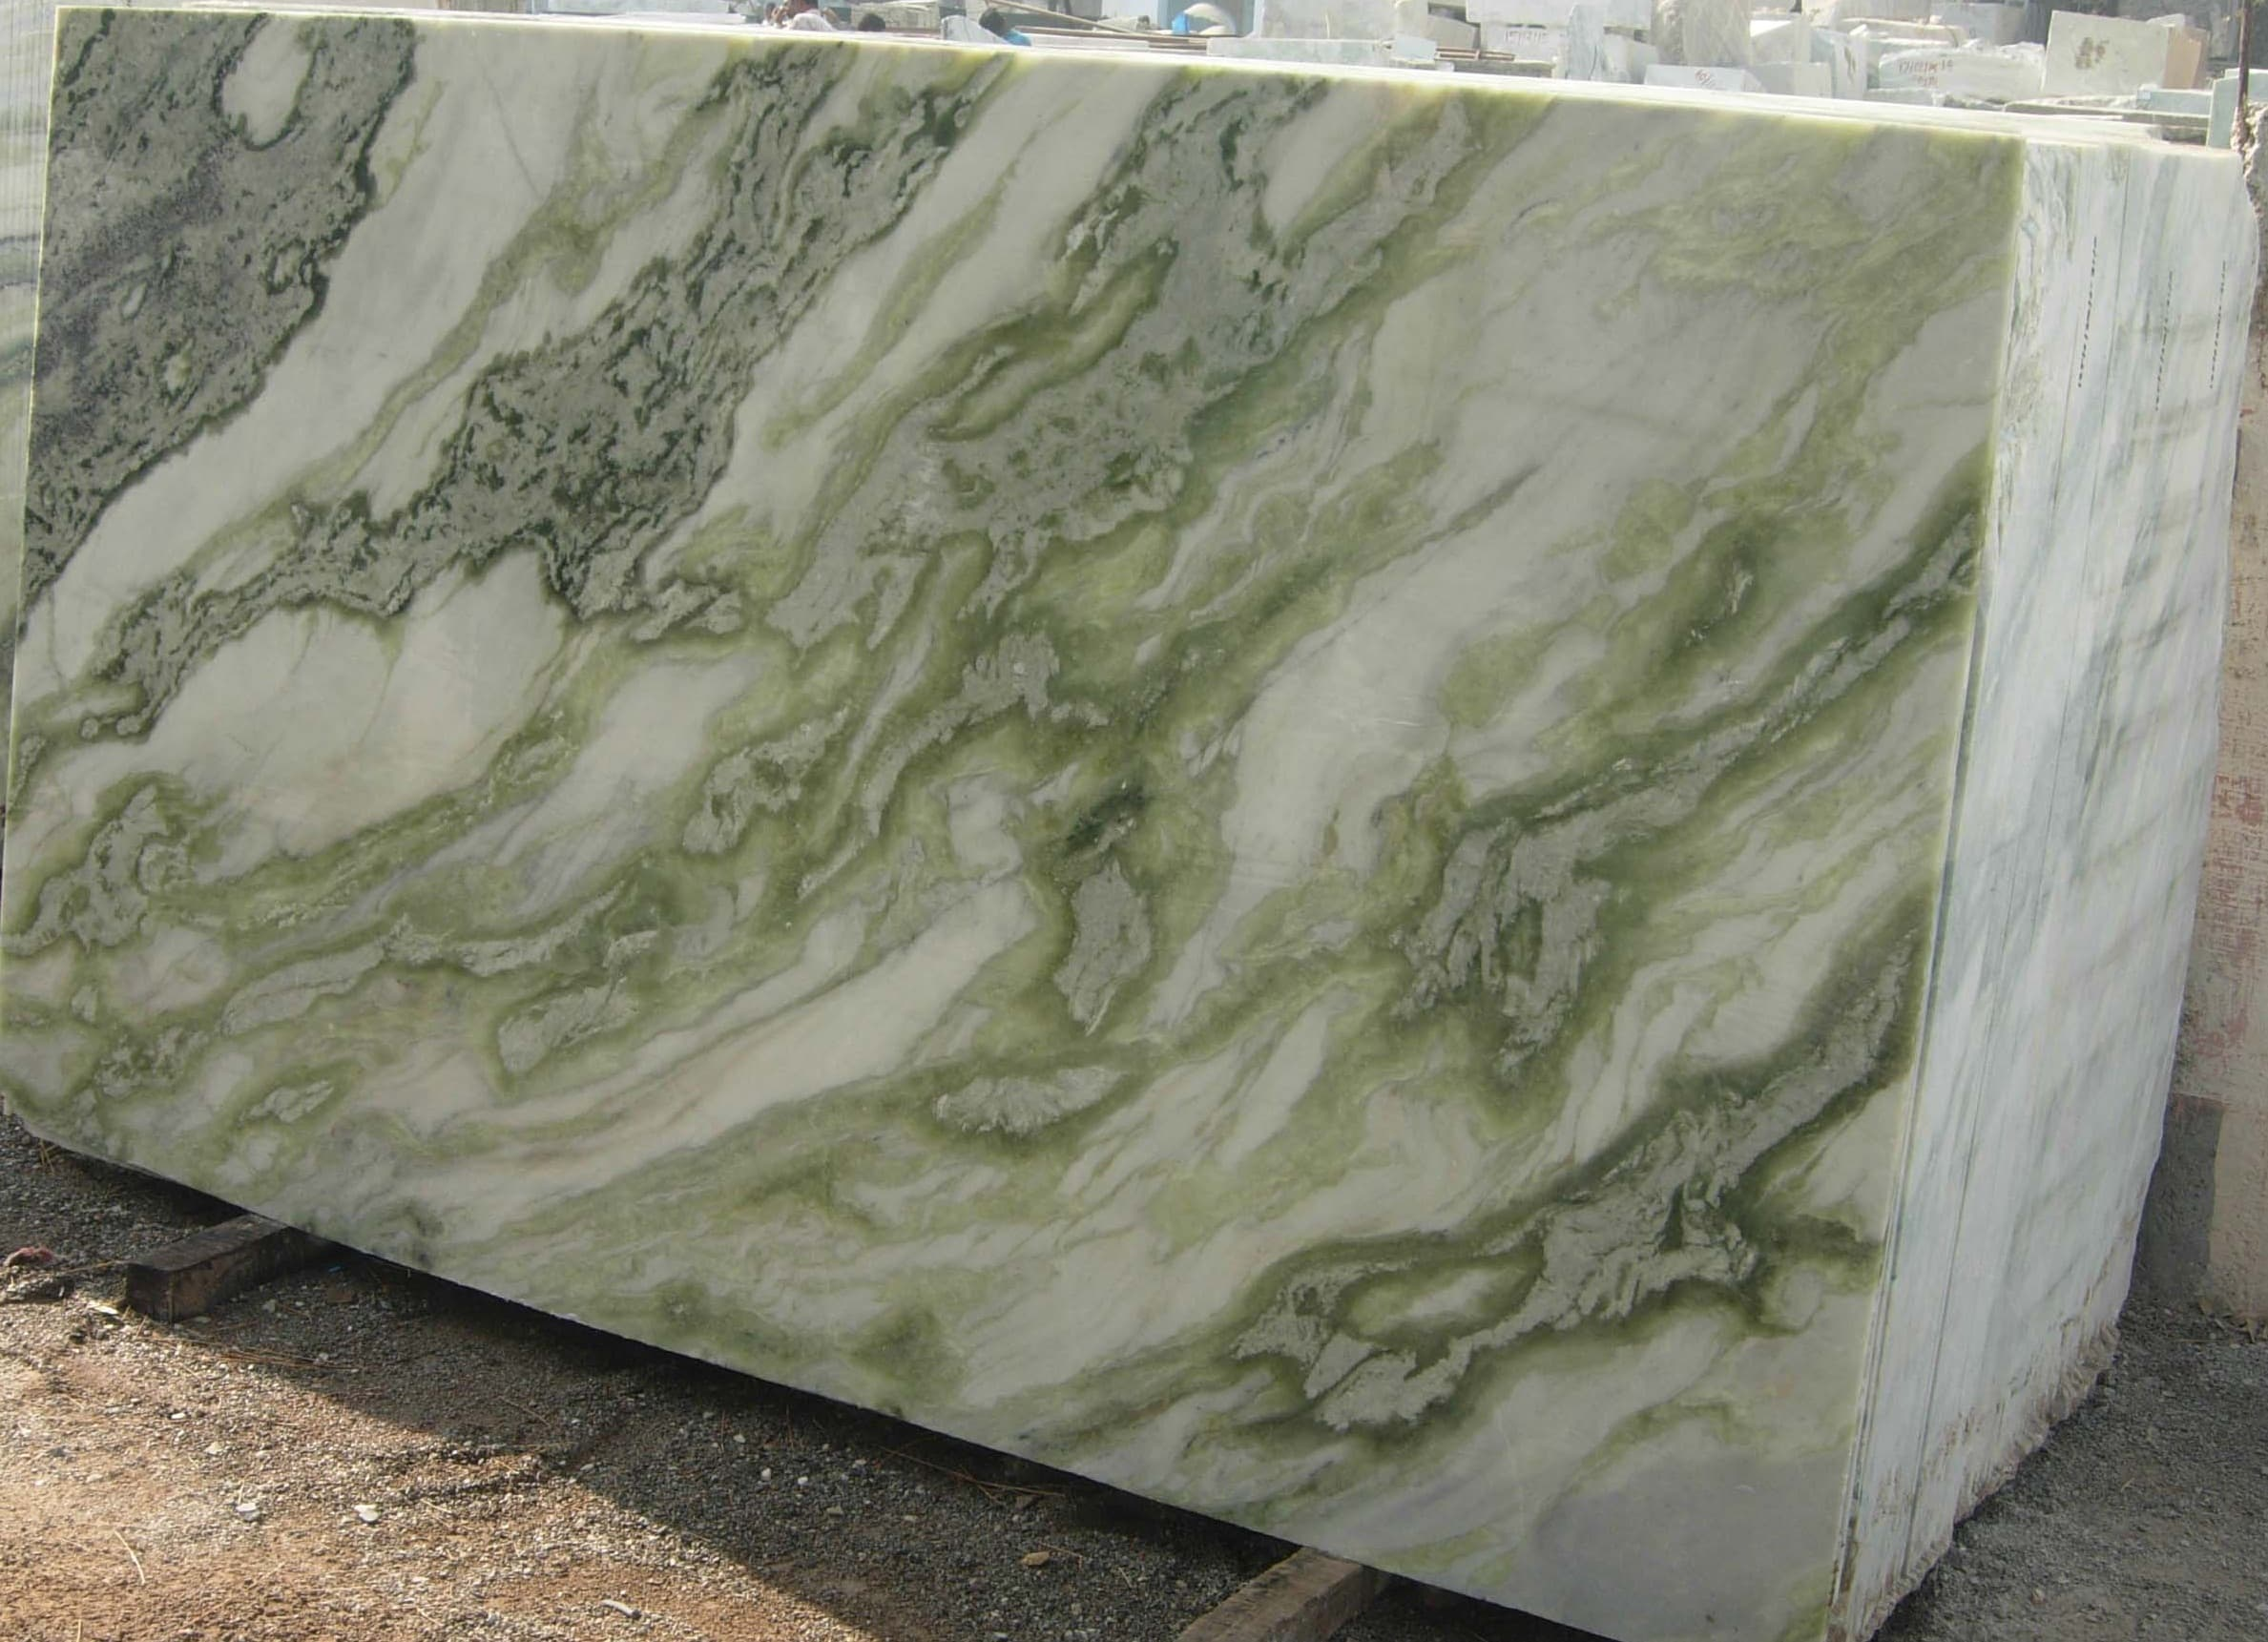 Green Marbles Rk Marbles Lowest Price Indian Green Marbles Supplier